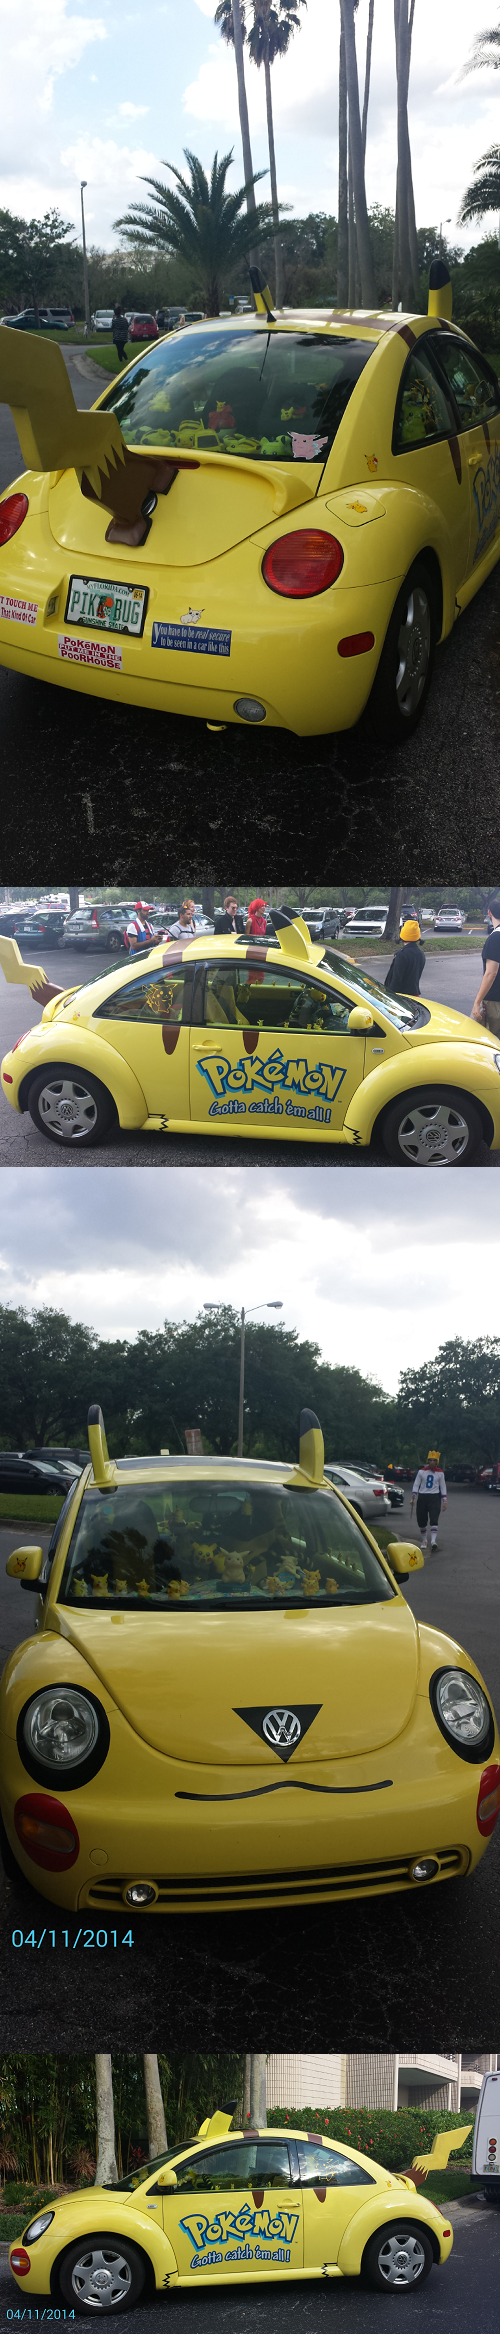 Pokémon,IRL,cars